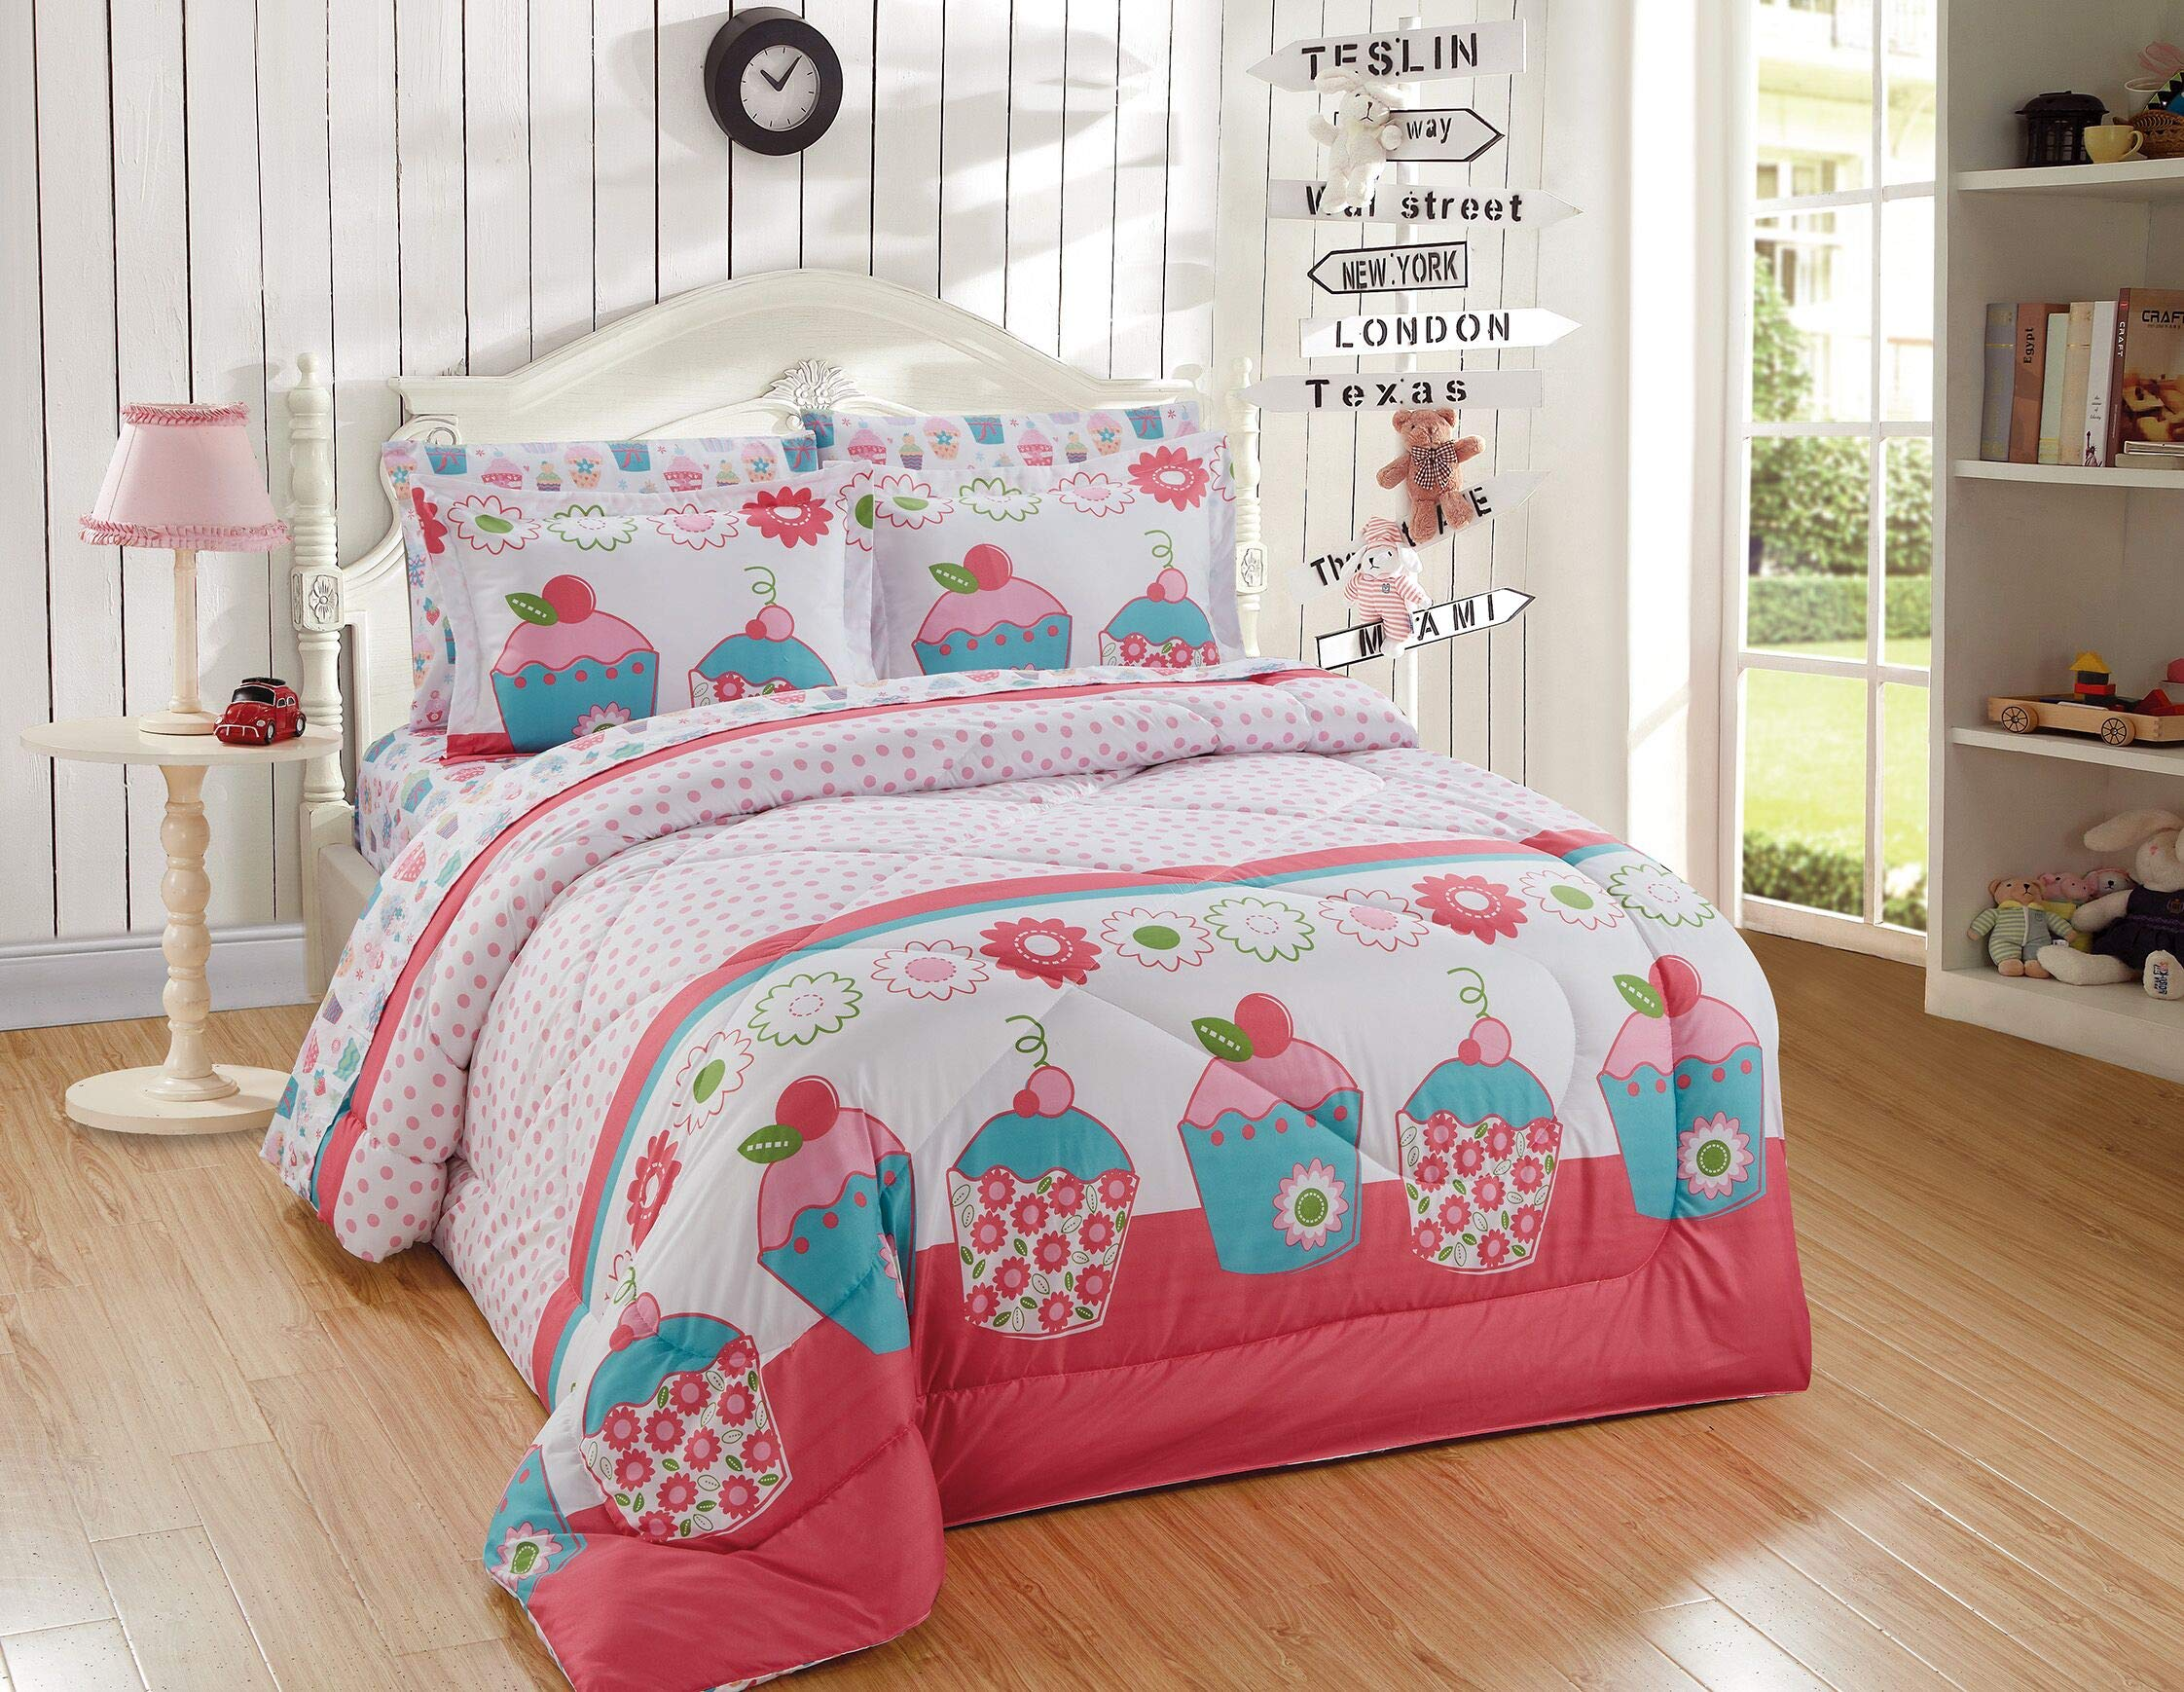 Kids Zone Home Linen 7pc Full Comforter Set for Girls Turquoise Cupcake Pink Green White Pink Dots Flowers by Kids Zone Home Linen